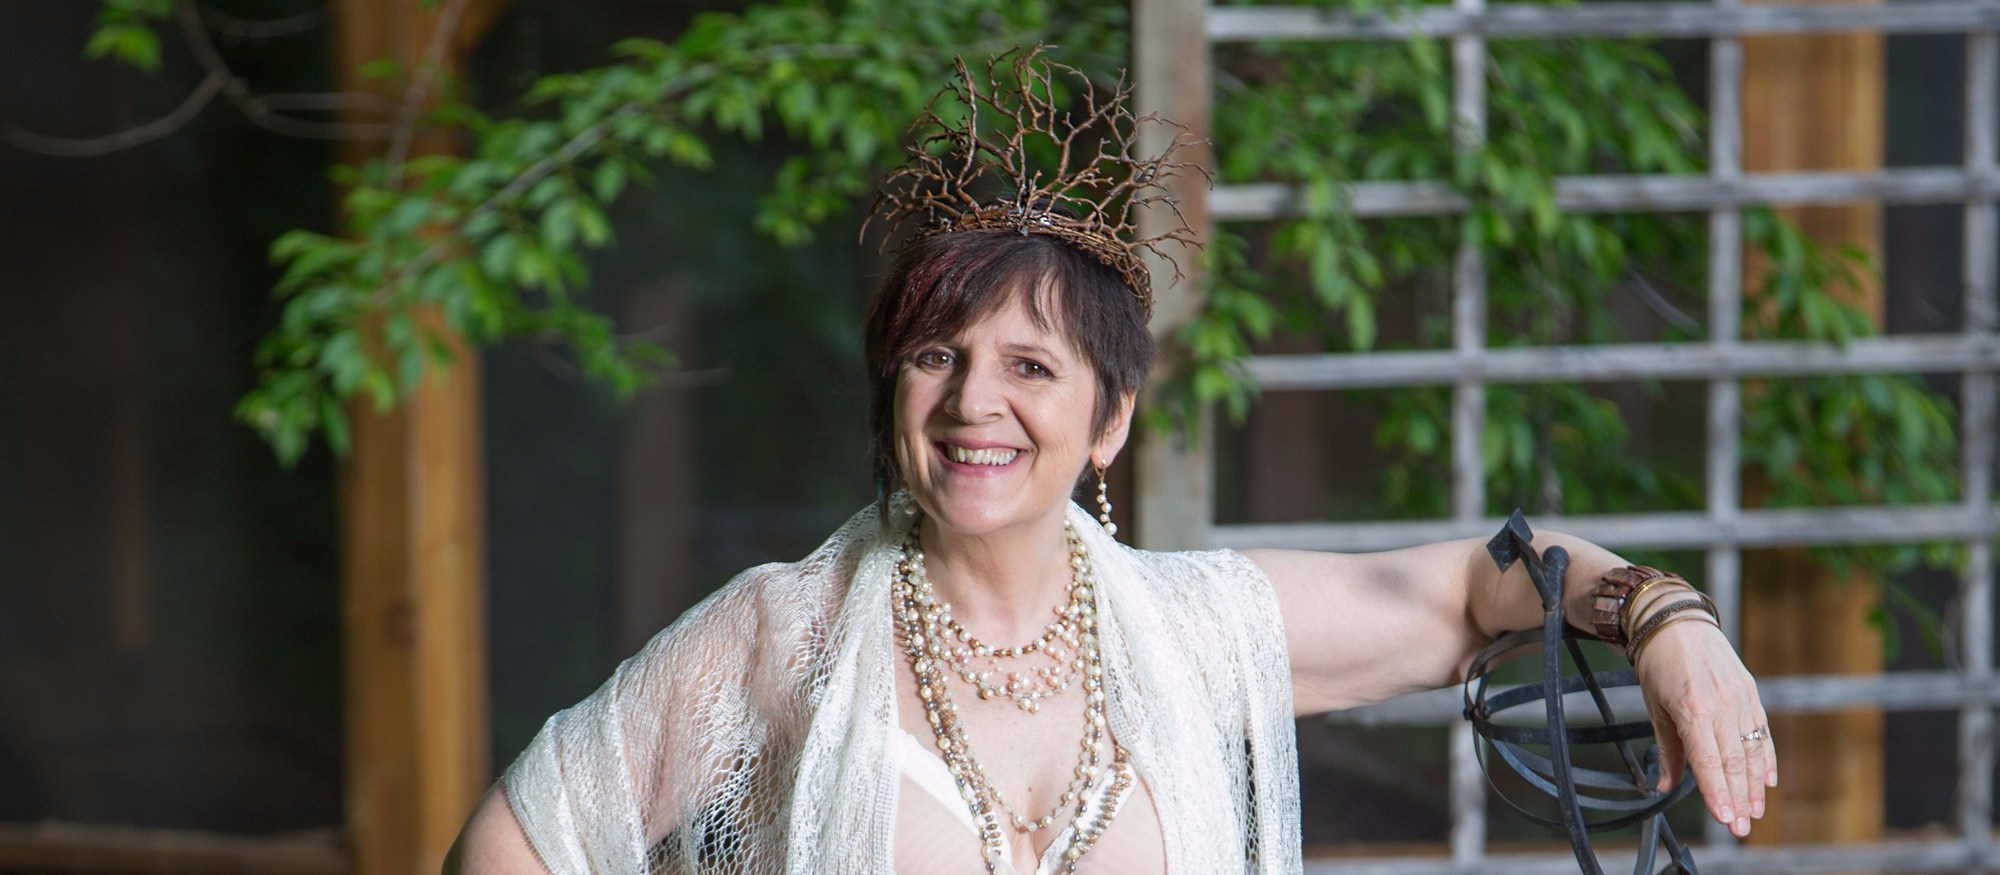 photo of Diane Miller - the Goddess behind Goddess Be Me